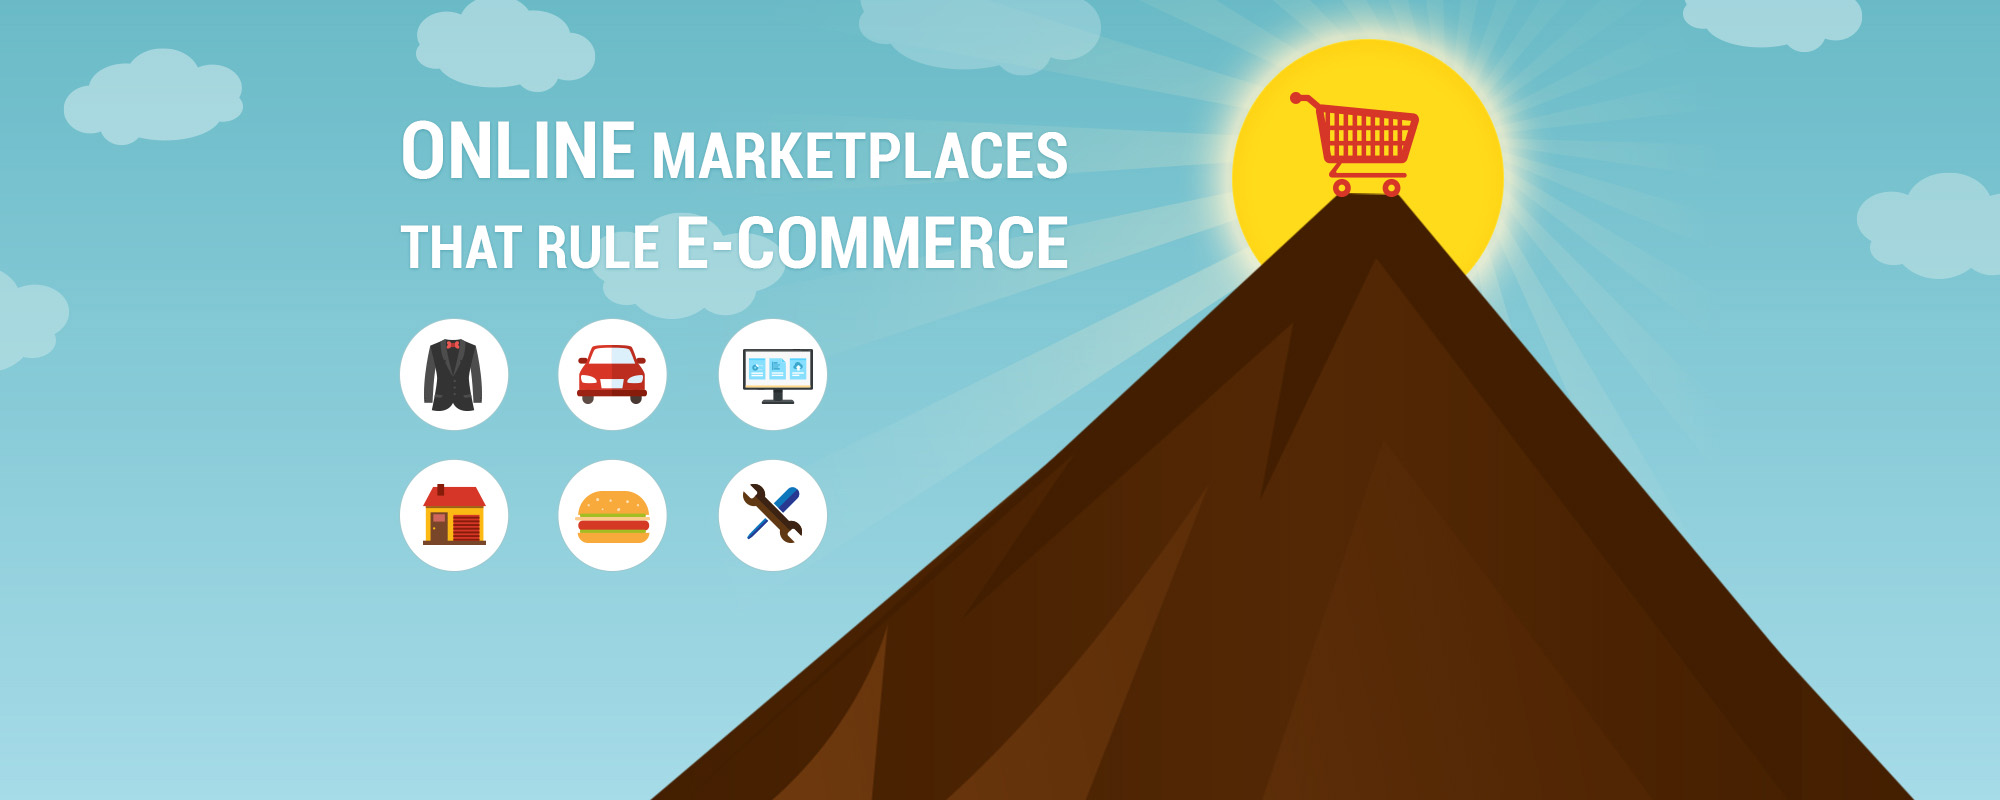 Online Marketplace Business Models That Will Reign eCommerce World For Next Ten Years